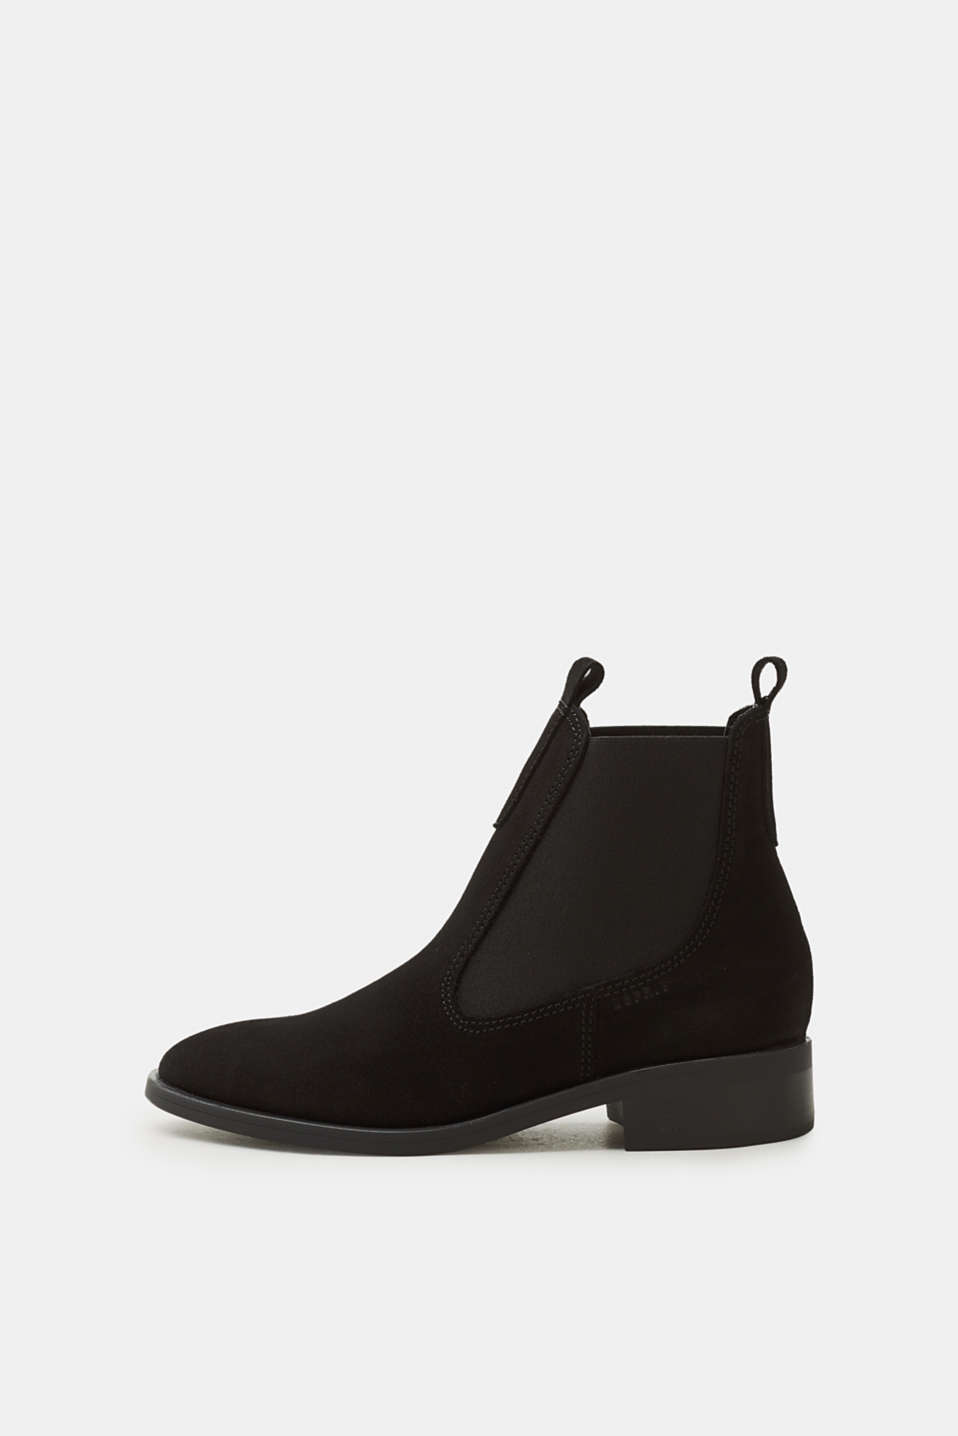 A classic - perfect for transitional wear! The rubberised outsole and suede leather make these Chelsea boots the perfect essential for your look.